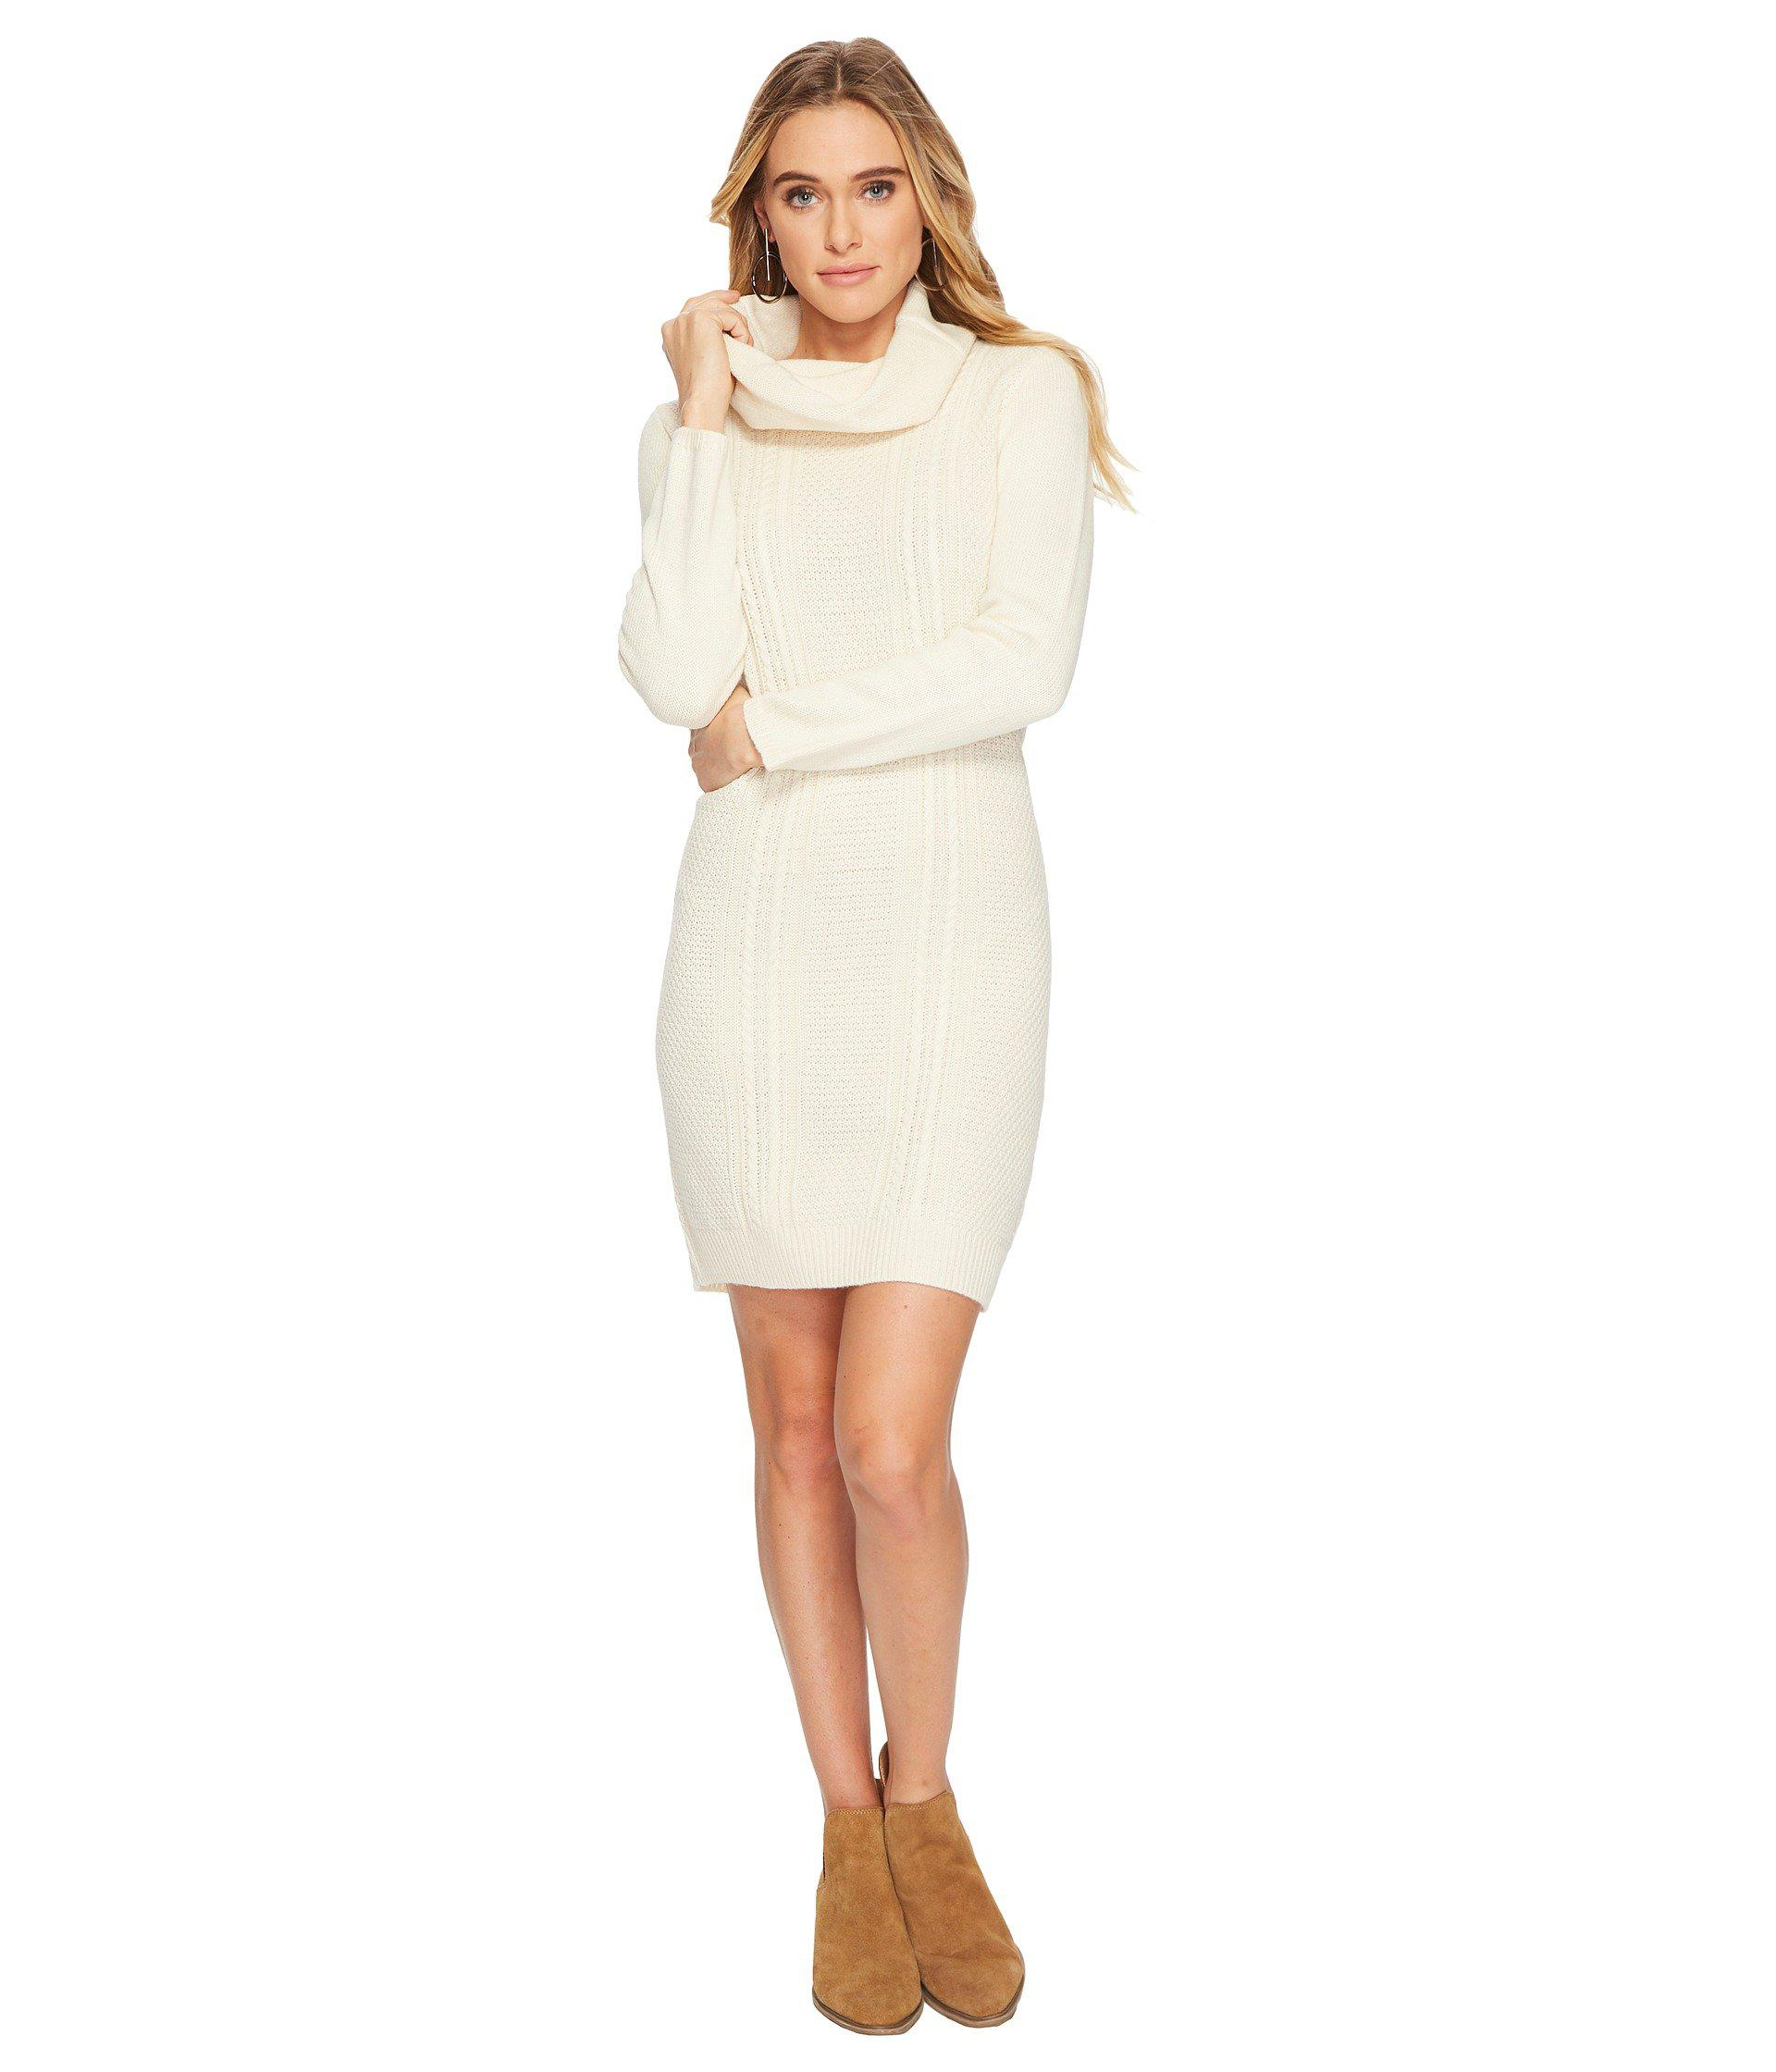 761f7d53ae0 Jack BB Dakota Amory Cable Knit Cowl Neck Sweater Dress in White - Lyst